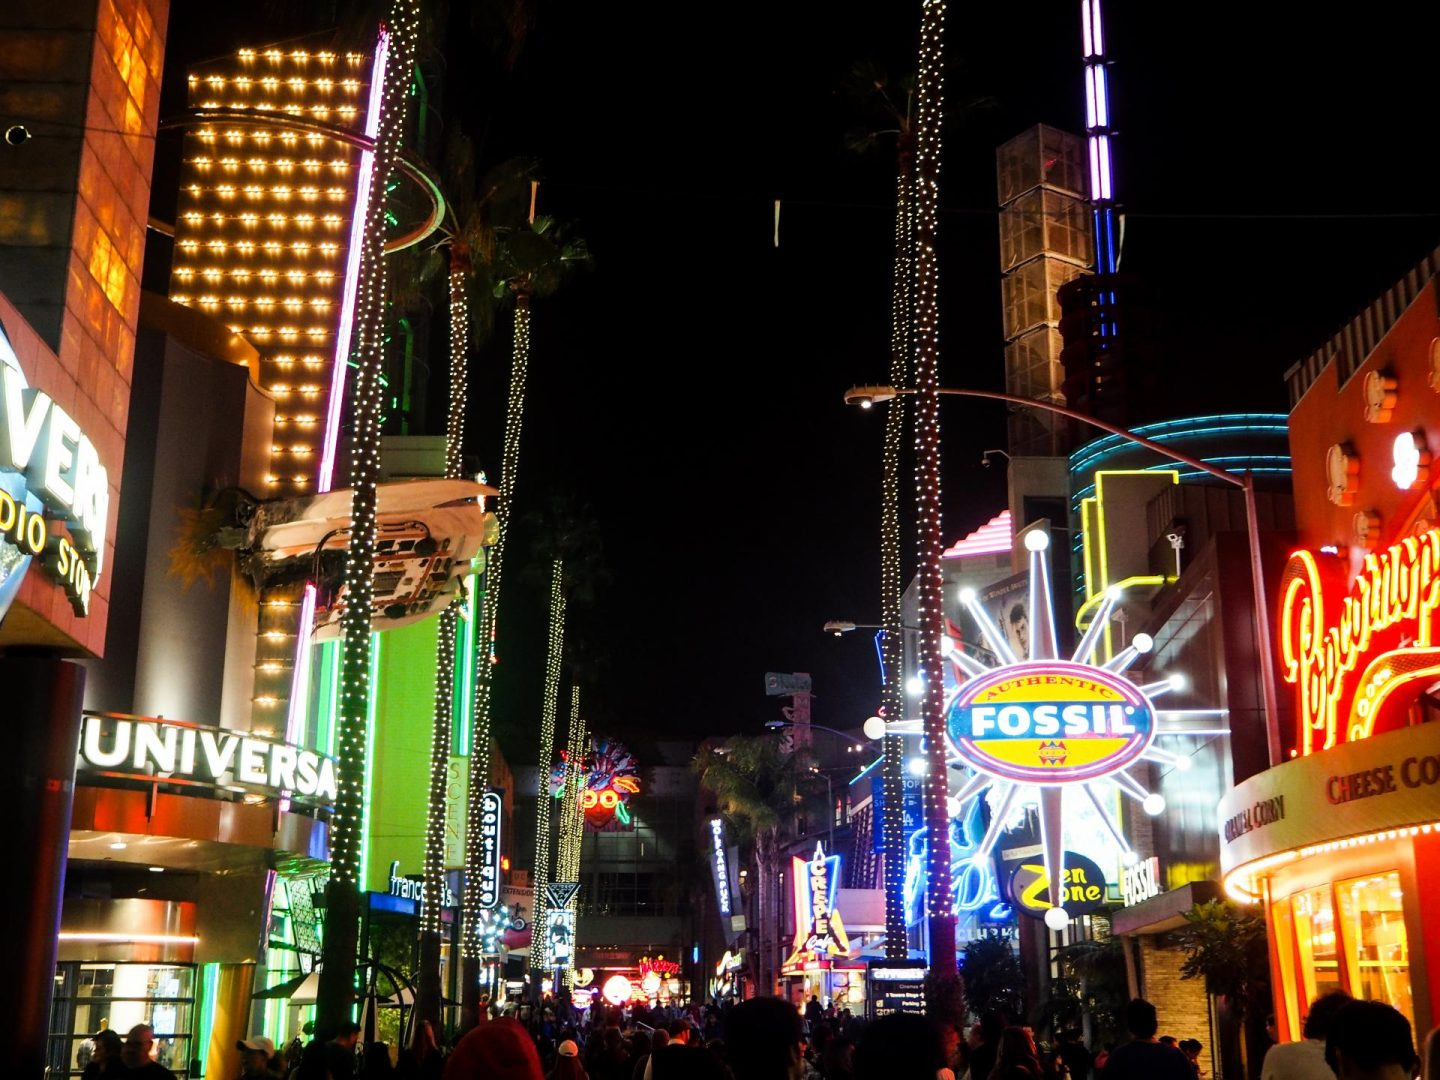 Citywalk at Universal Studios, Hollywood with Attractiontix - Rachel Nicole UK Blogger